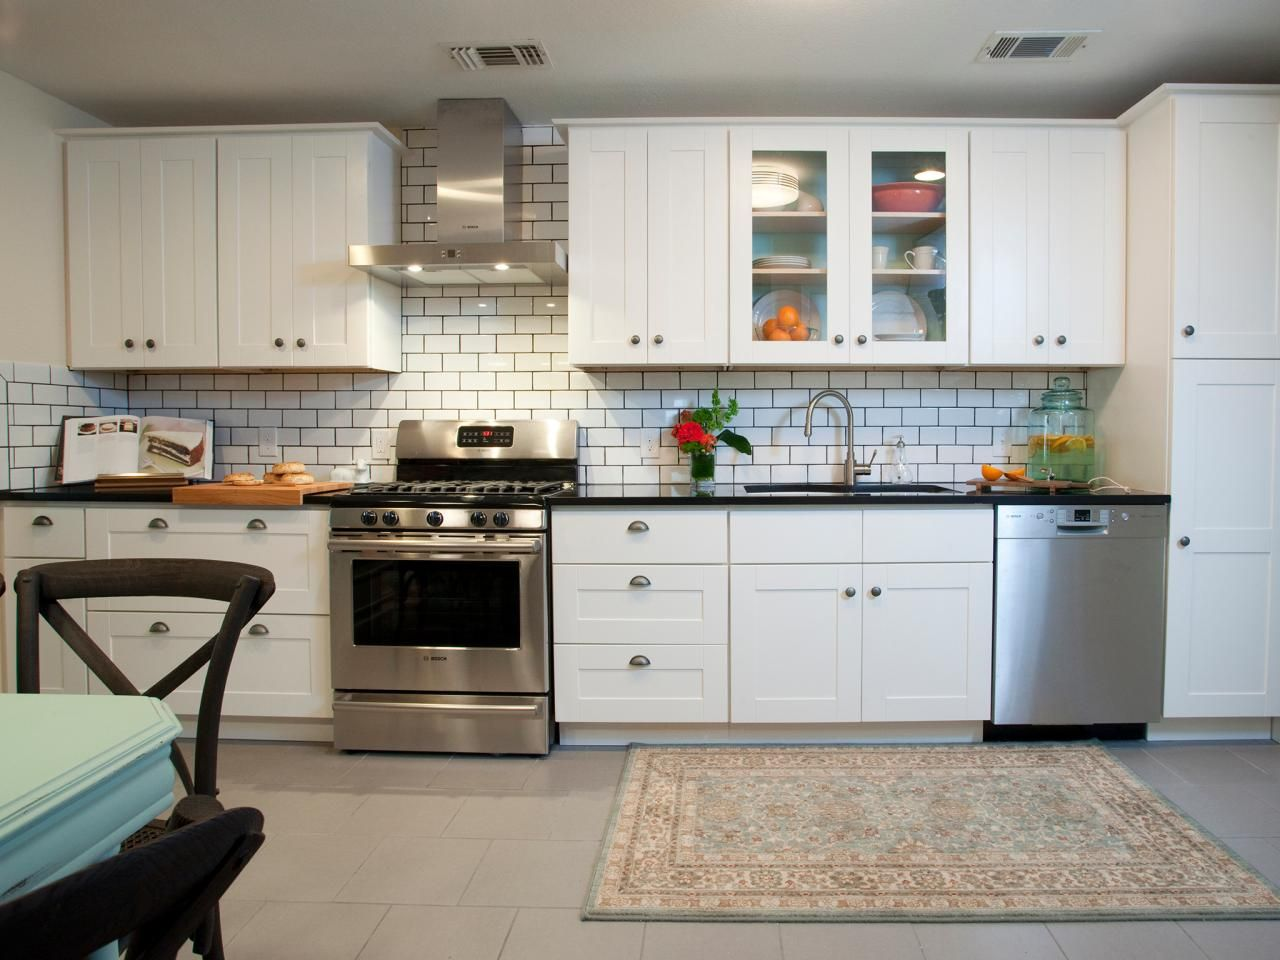 Palochina Sala Set Philippines Dress Your Kitchen In Style With Some White Subway Tiles!